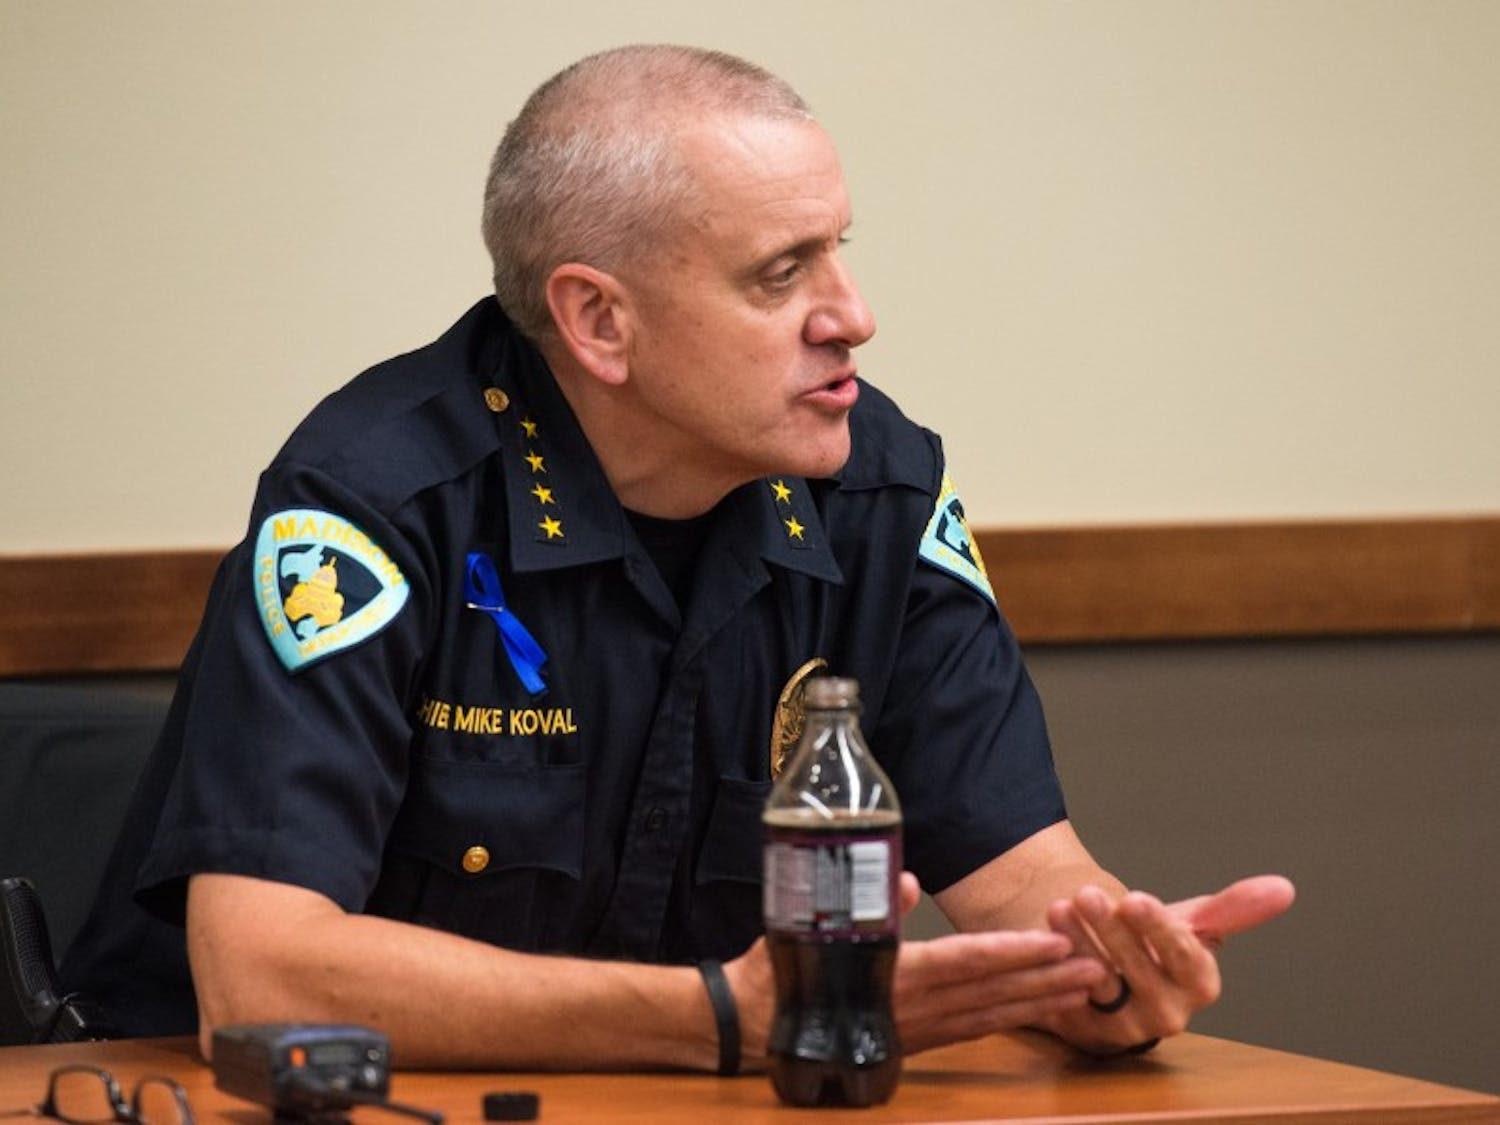 Policy changes announced by MPD Chief Mike Koval on Monday reaffirm the department's resistance to take part in federal immigration enforcement, except in cases of serious crimes related to public safety.